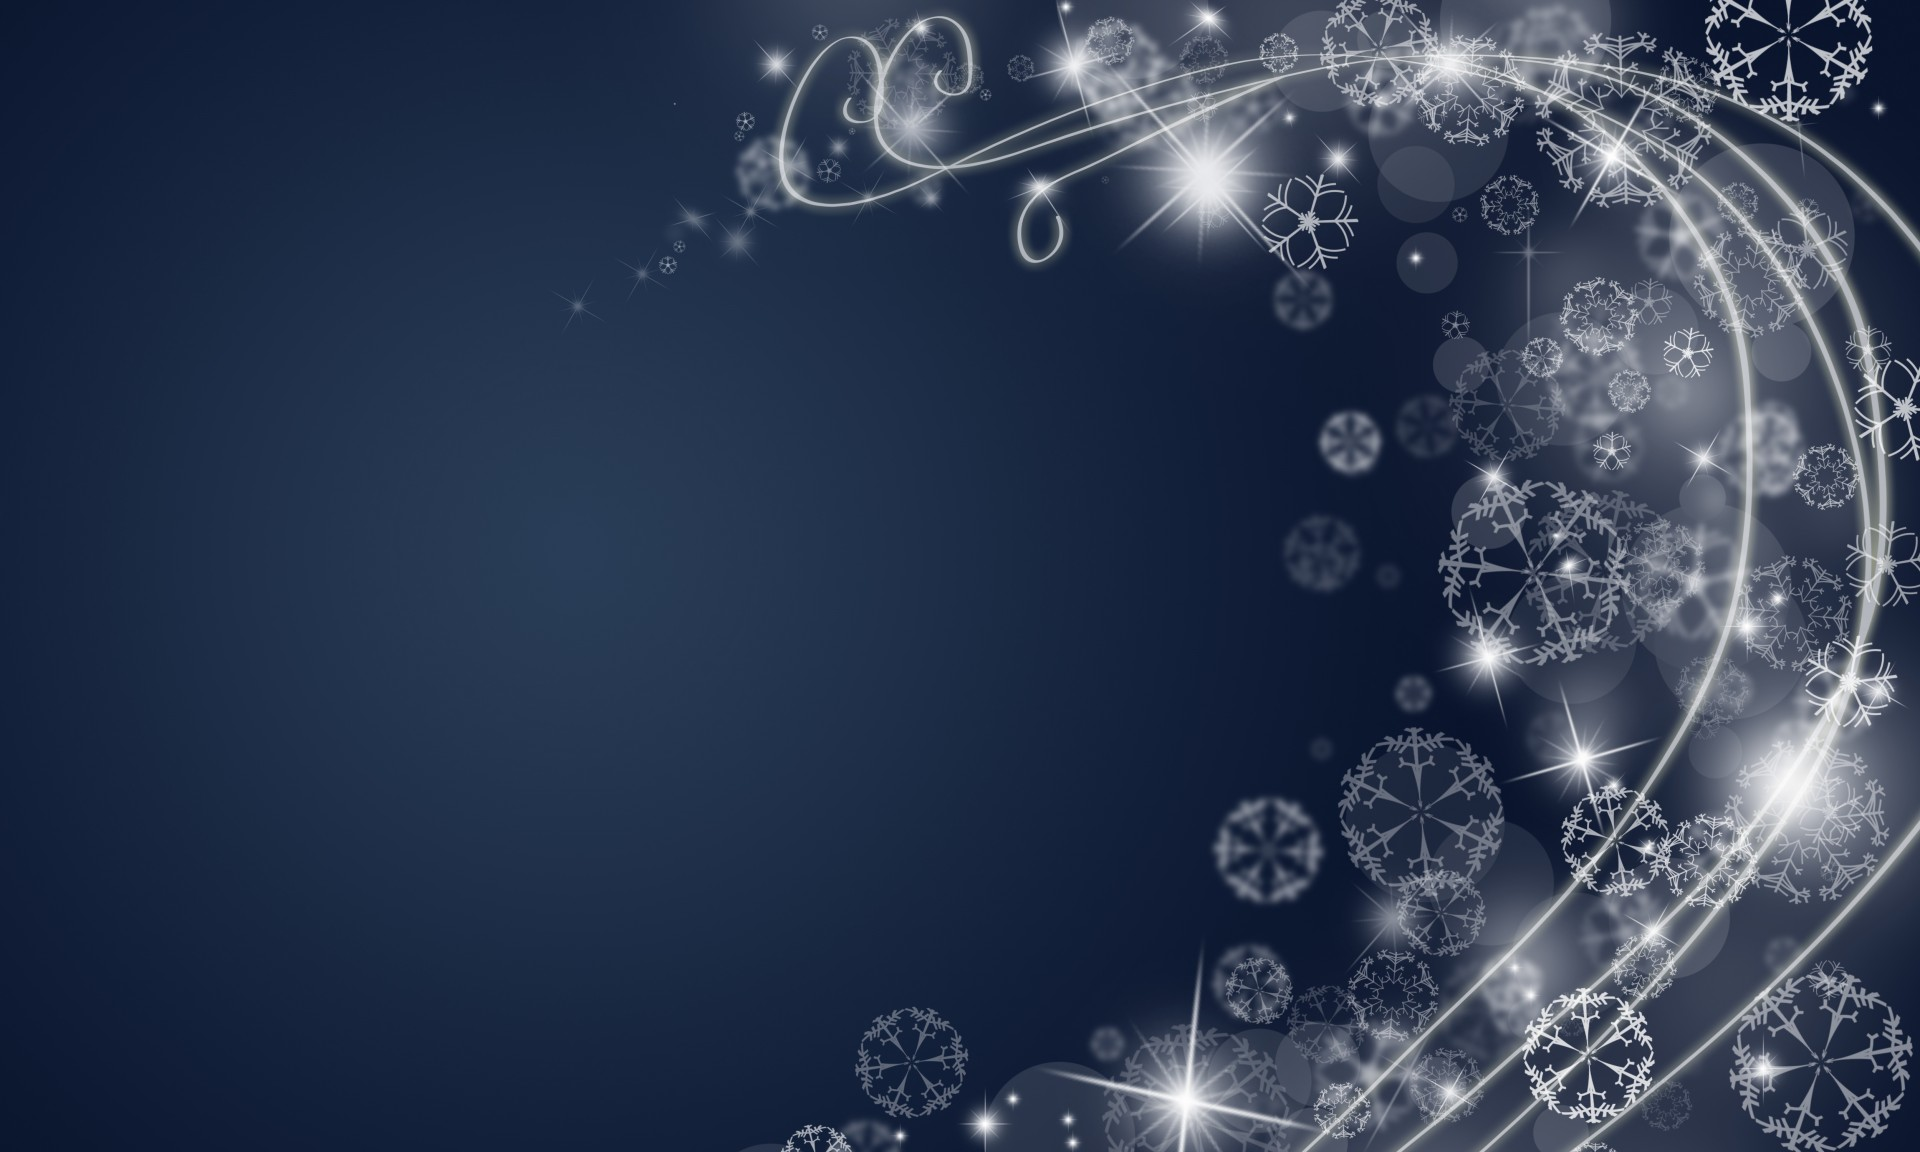 Blue Christmas Background Free Stock Photo - Public Domain Pictures